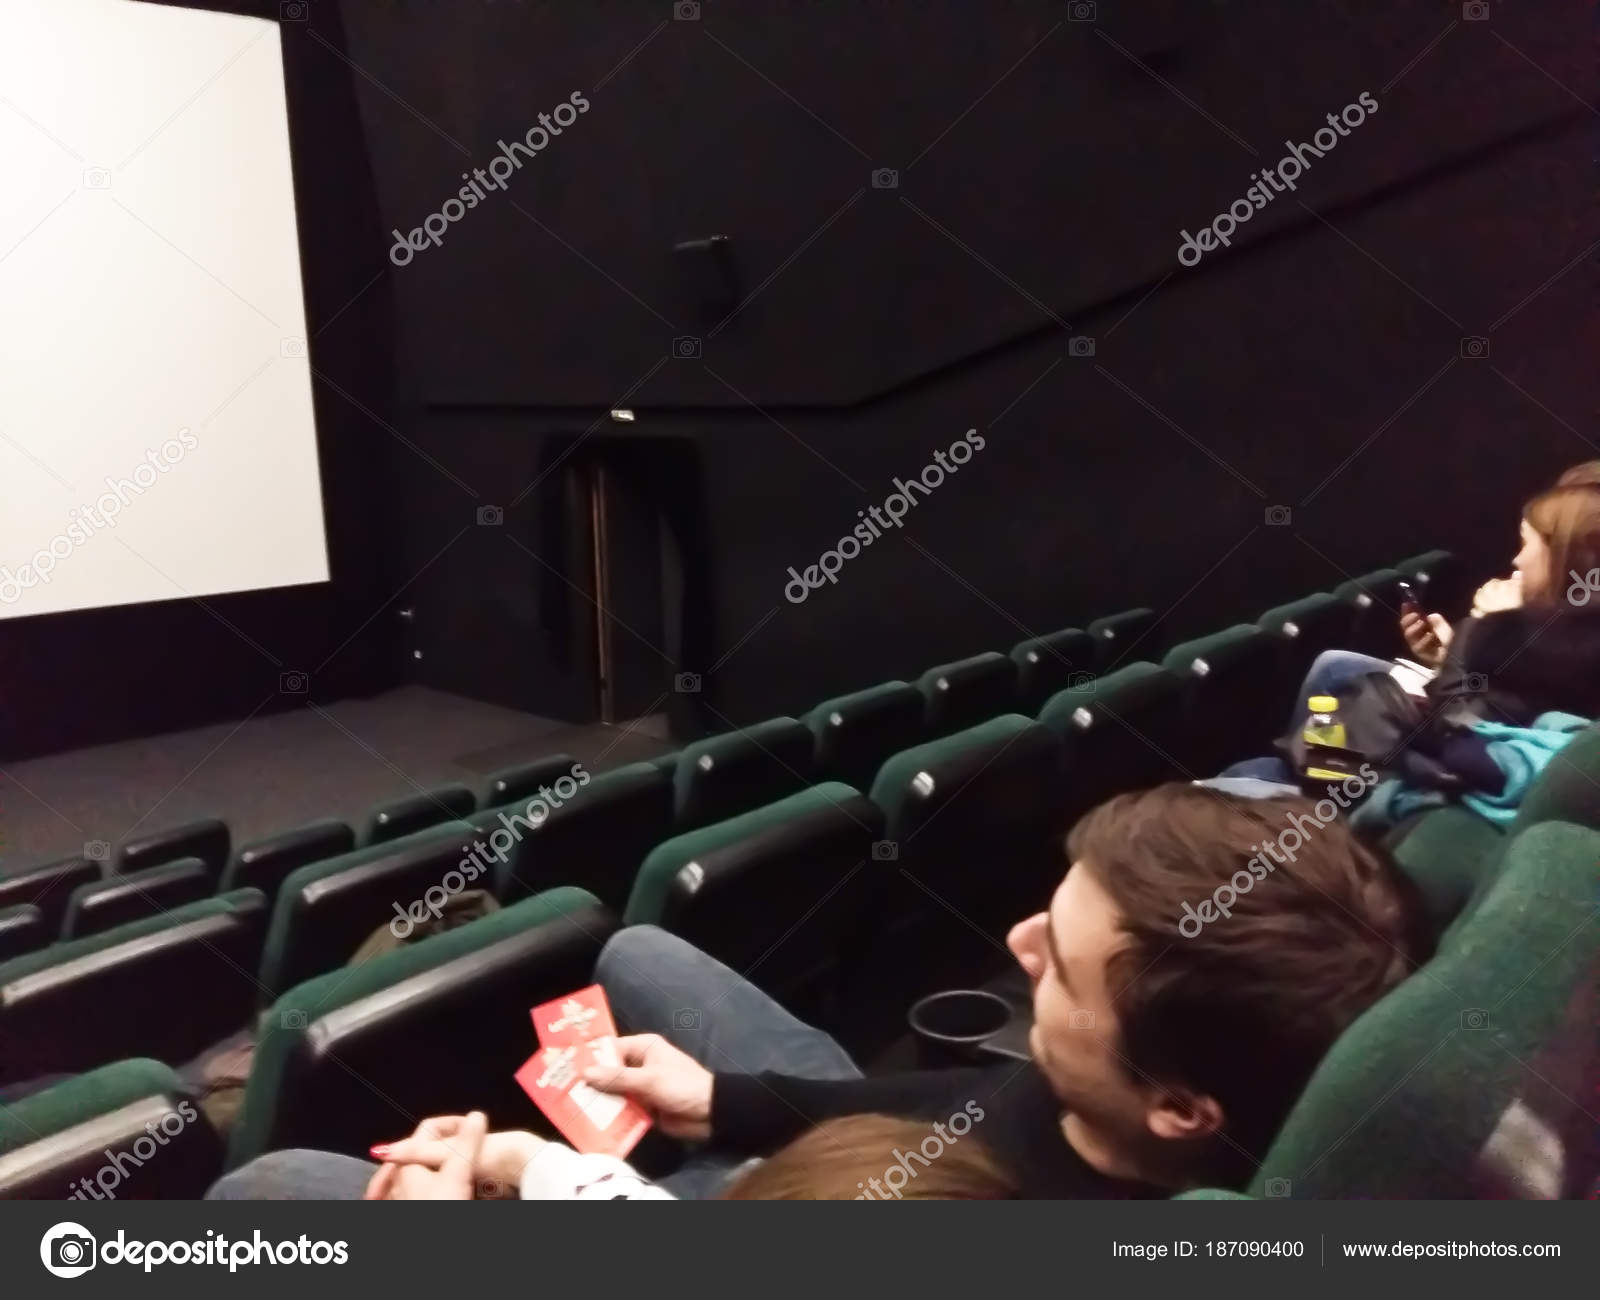 Cinema White Screen With Seats And People Silhouettes Stock Editorial Photo C Shapicingvar 187090400